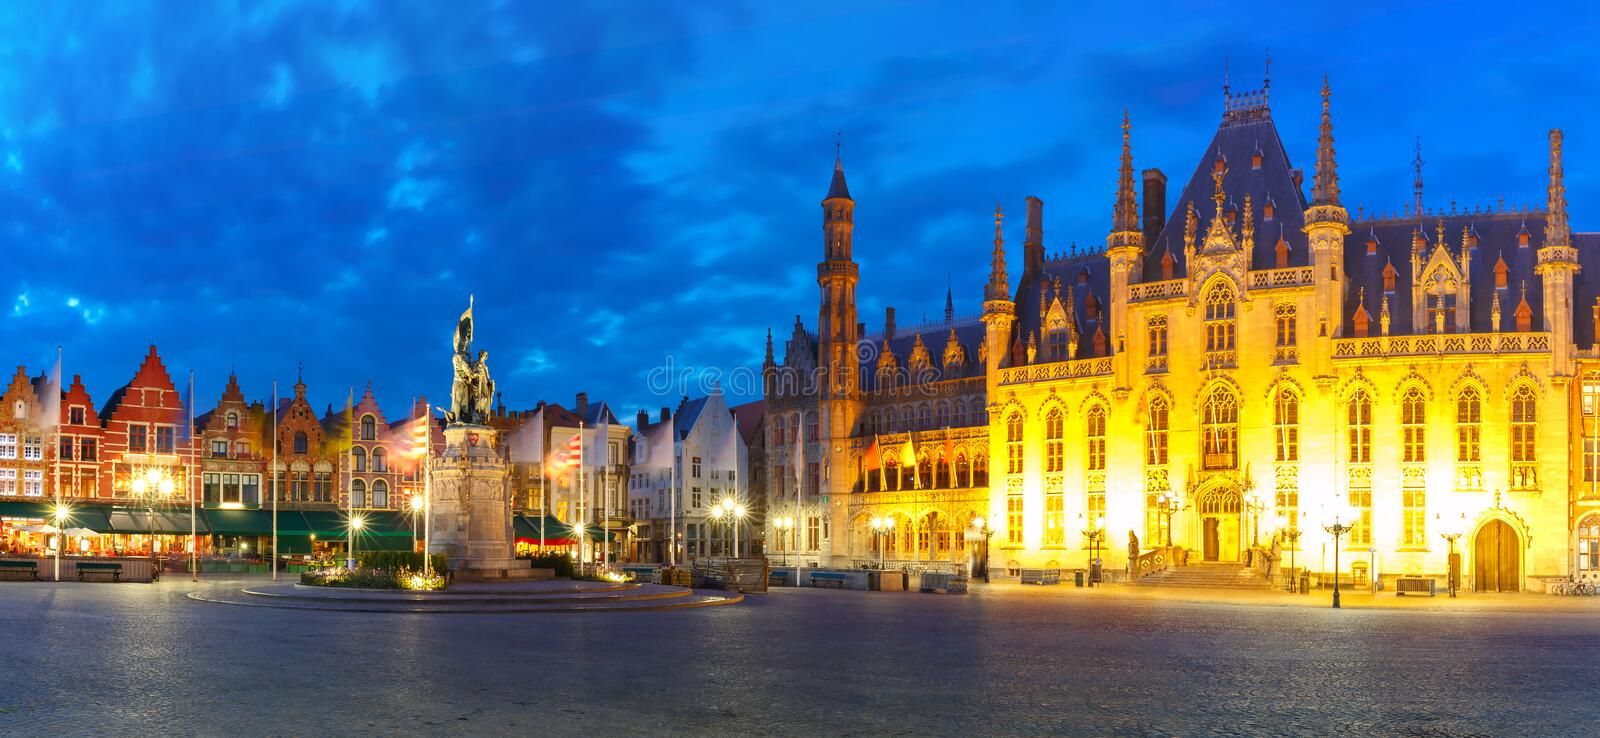 Old Market square in Bruges, Belgium. Panoramic view of typical Flemish colored houses and statue of Jan Breydel and Pieter de Coninck on the Grote Markt or stock photos